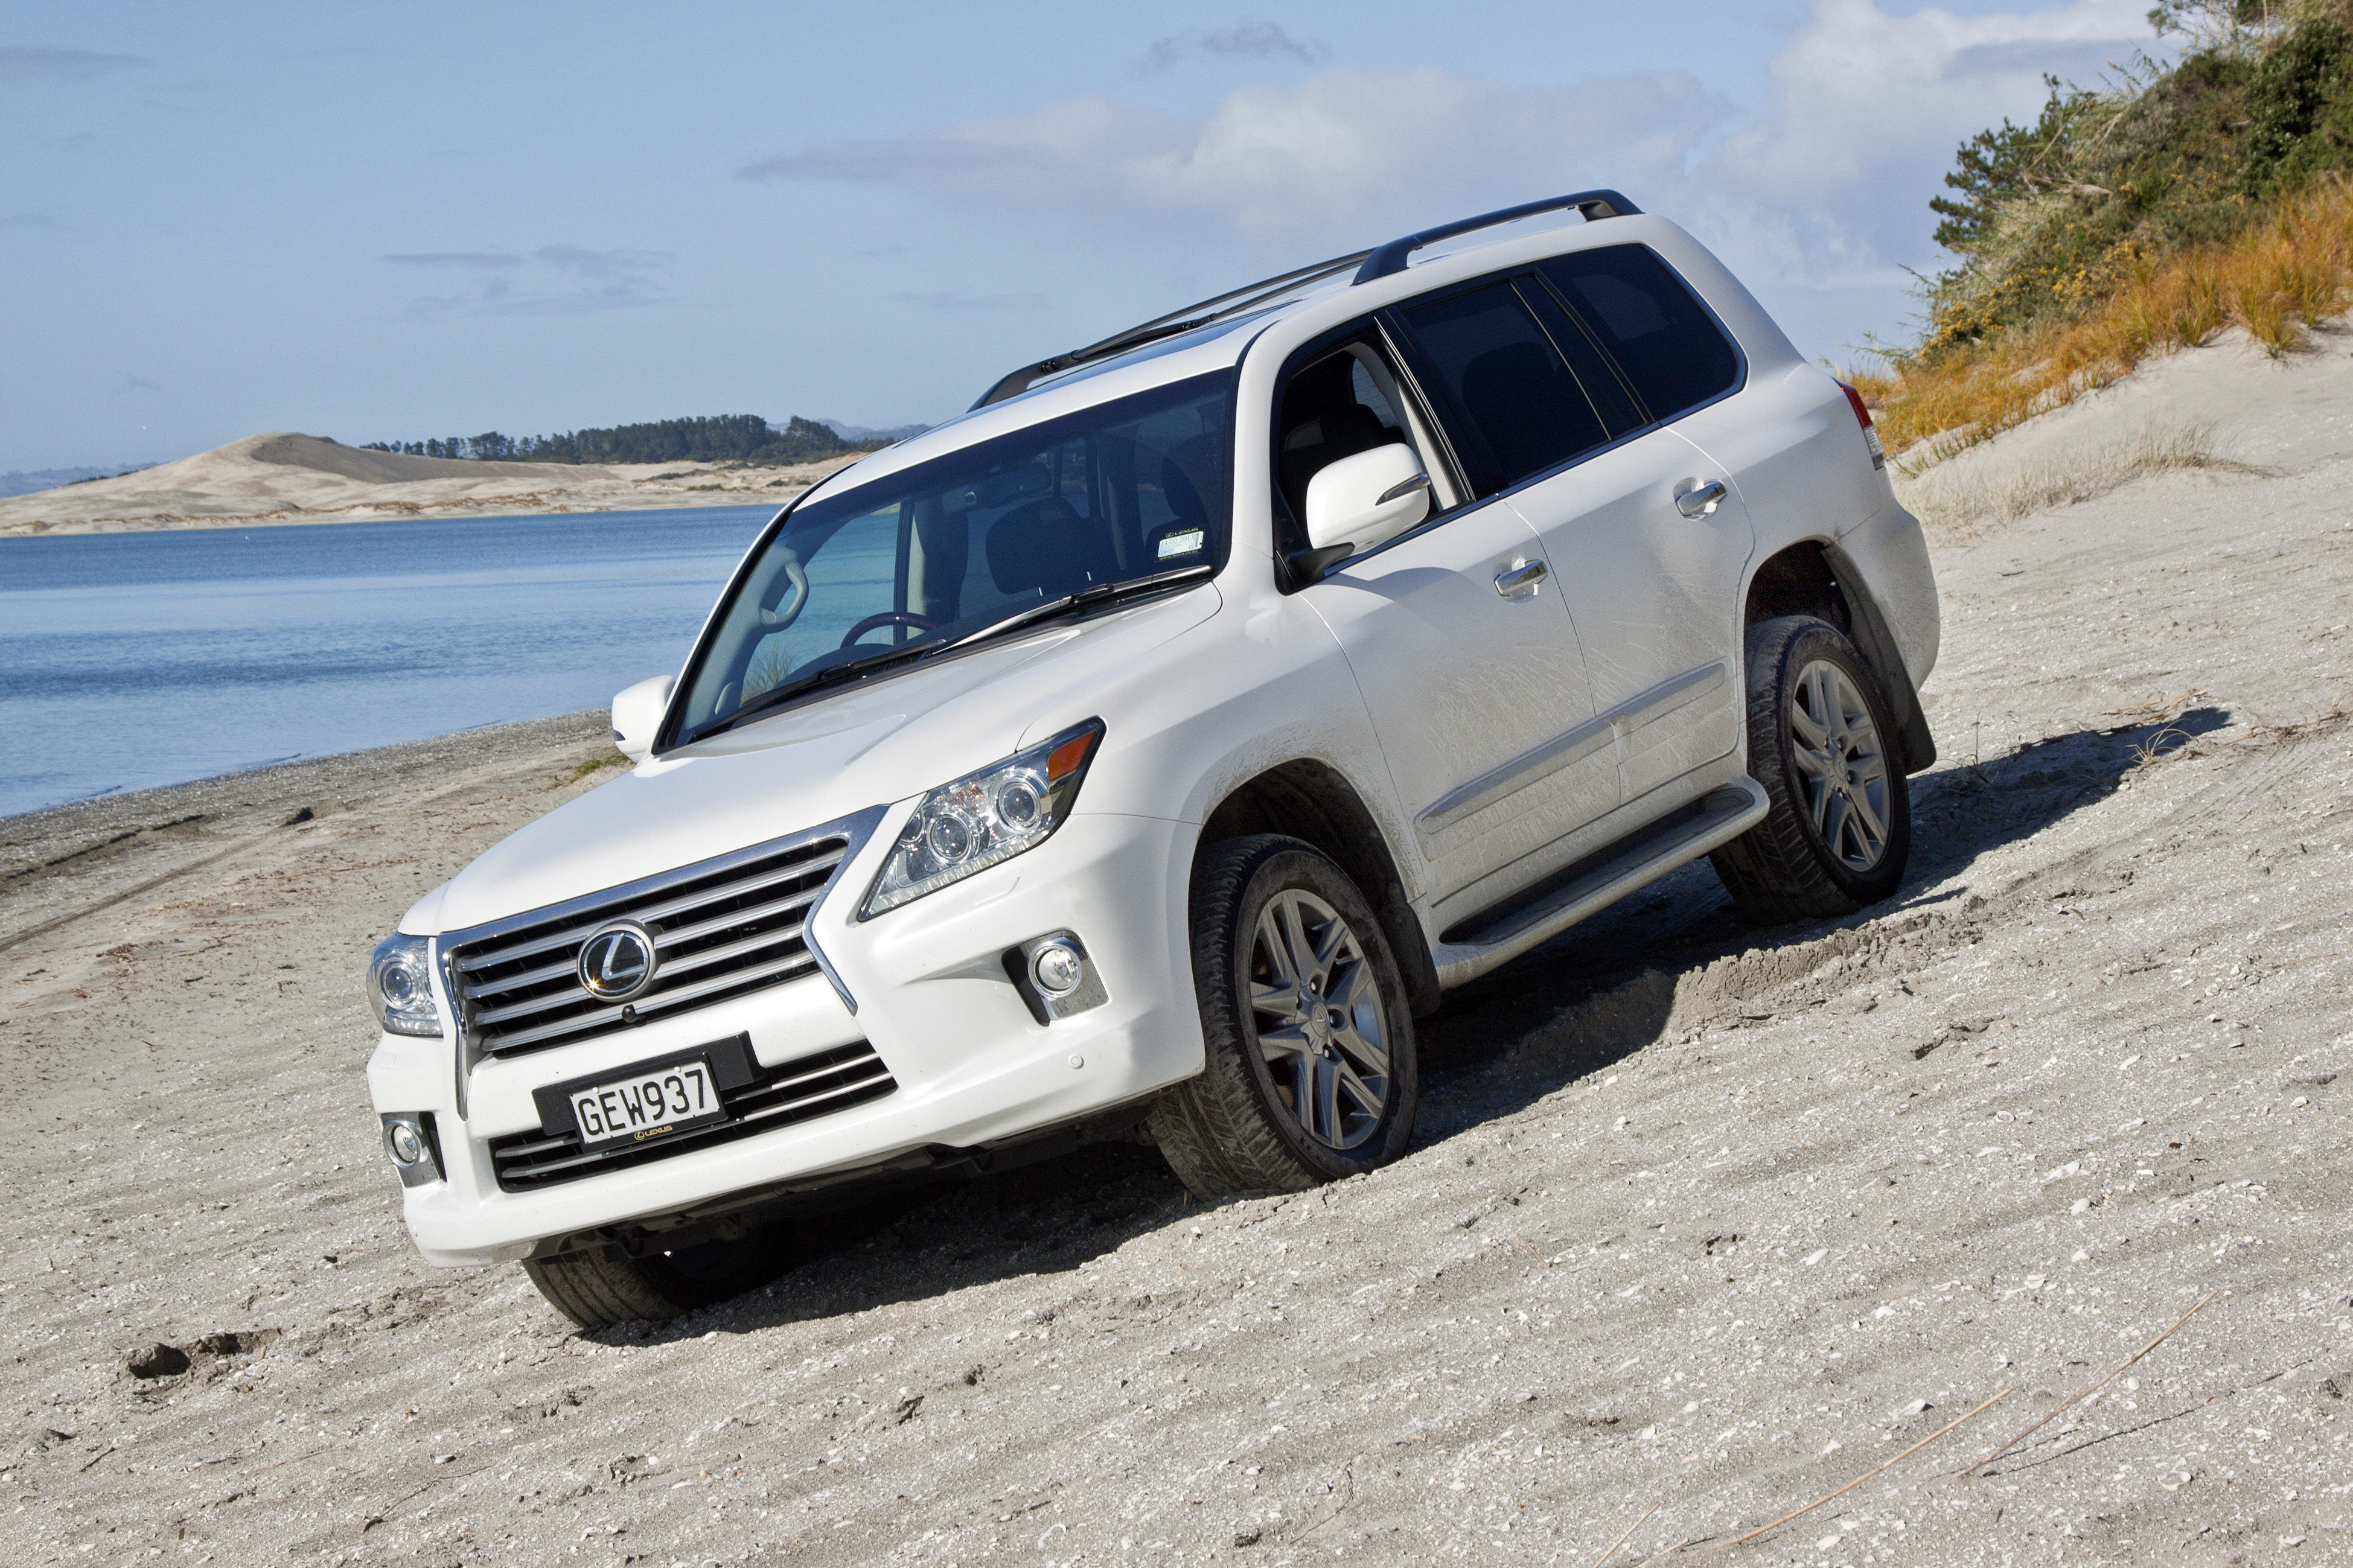 Land Cruiser Vs Lx570 Big Brother Has The Edge Nz Herald